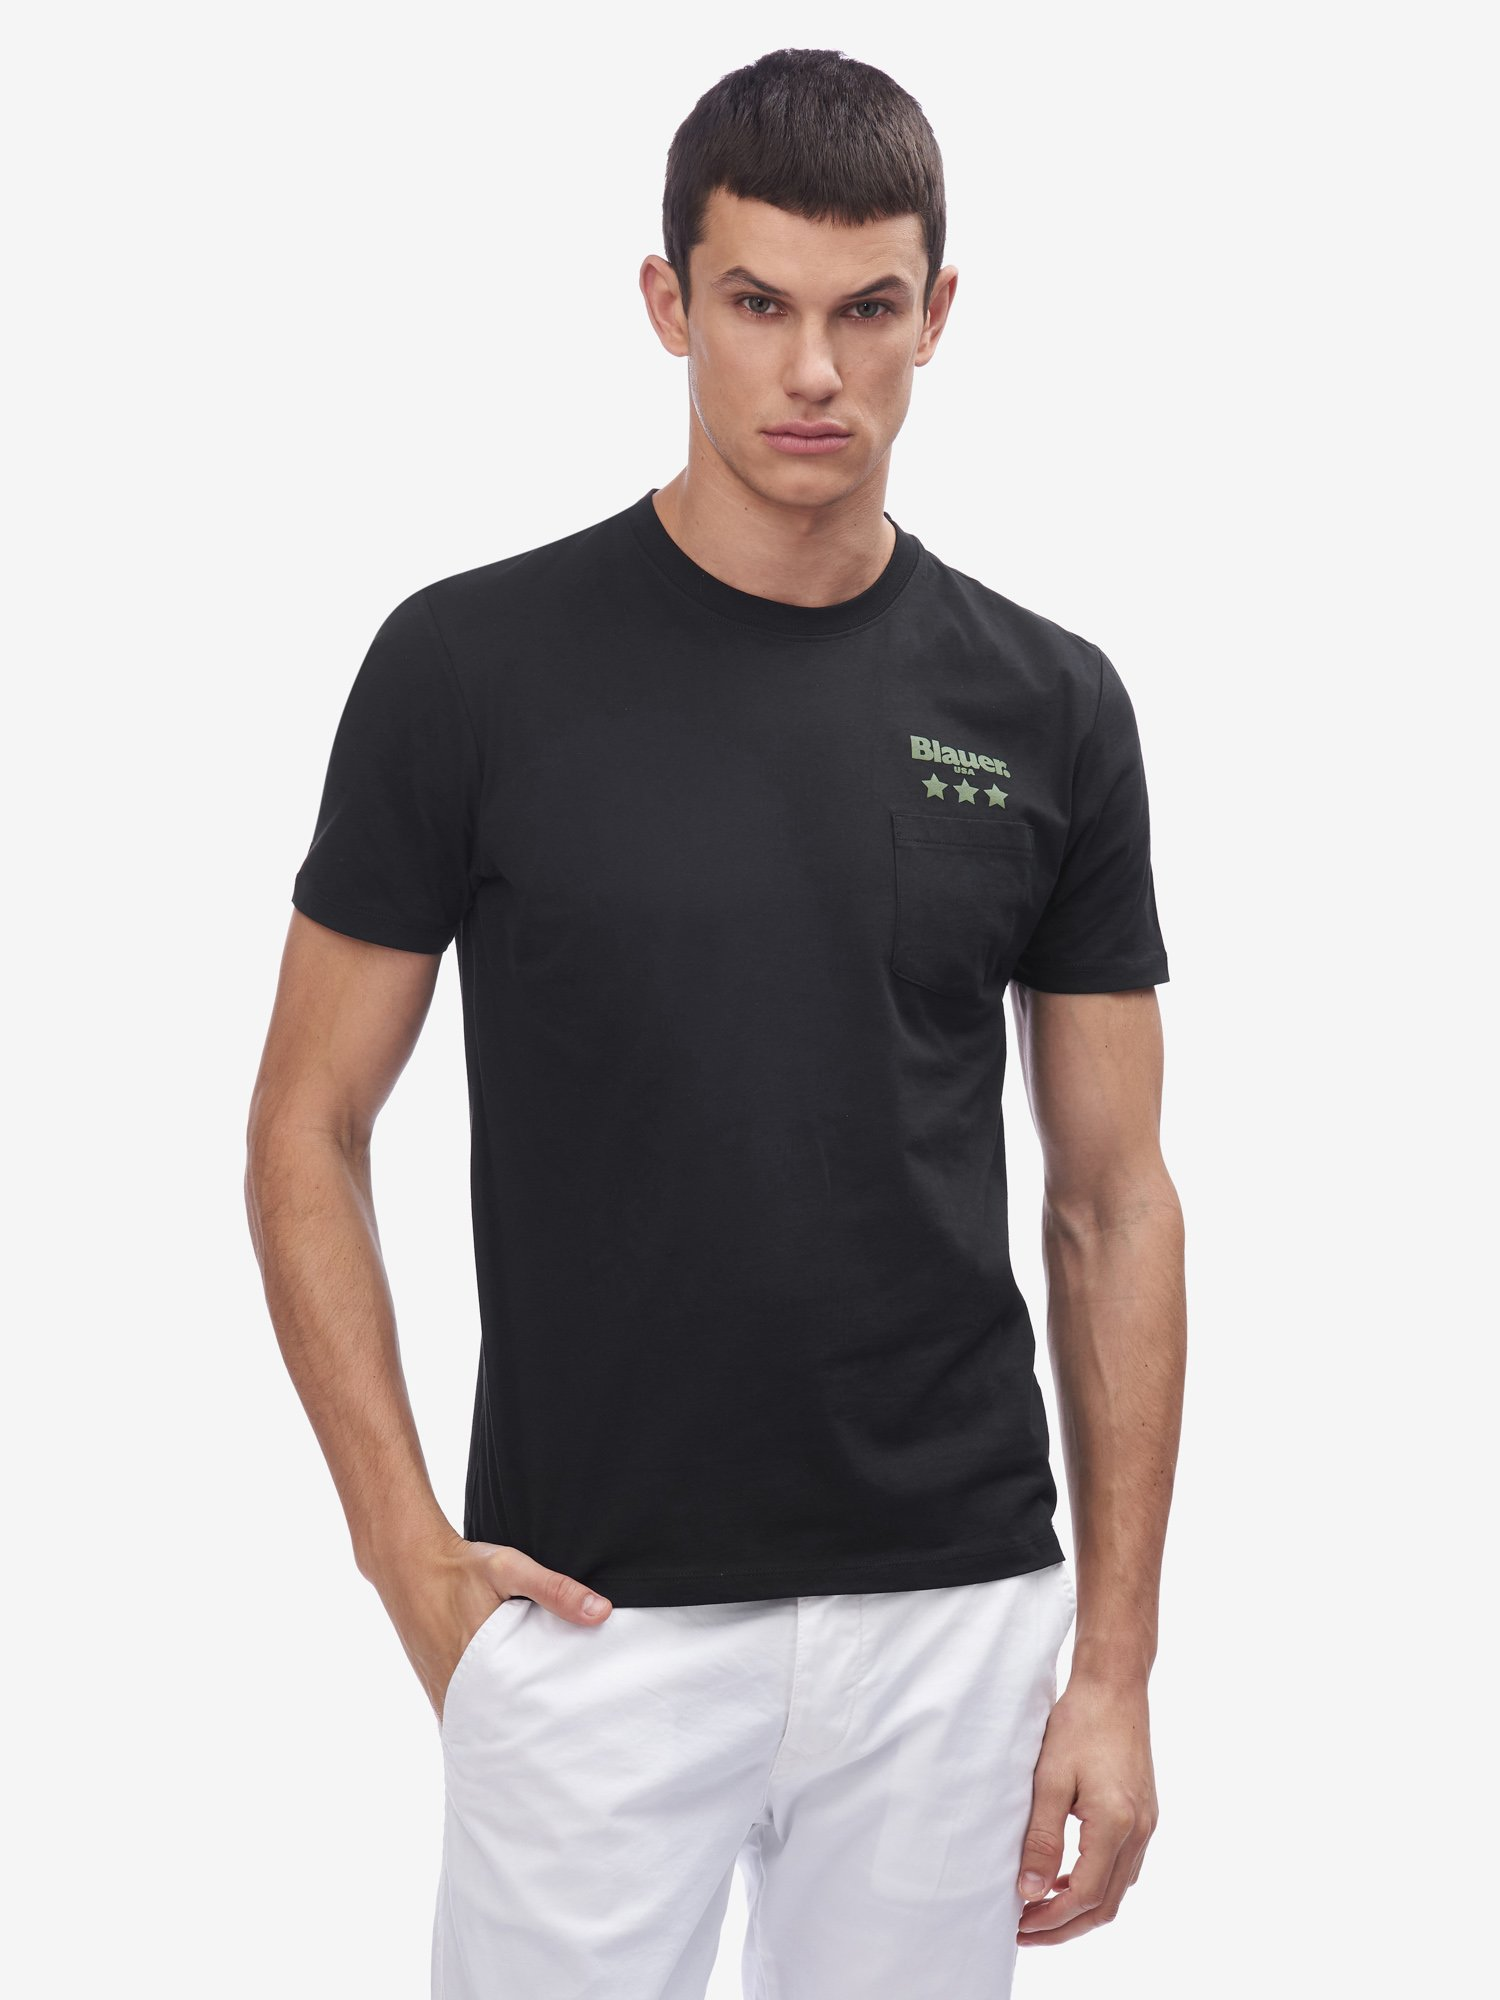 Blauer - POCKET T-SHIRT - Black - Blauer